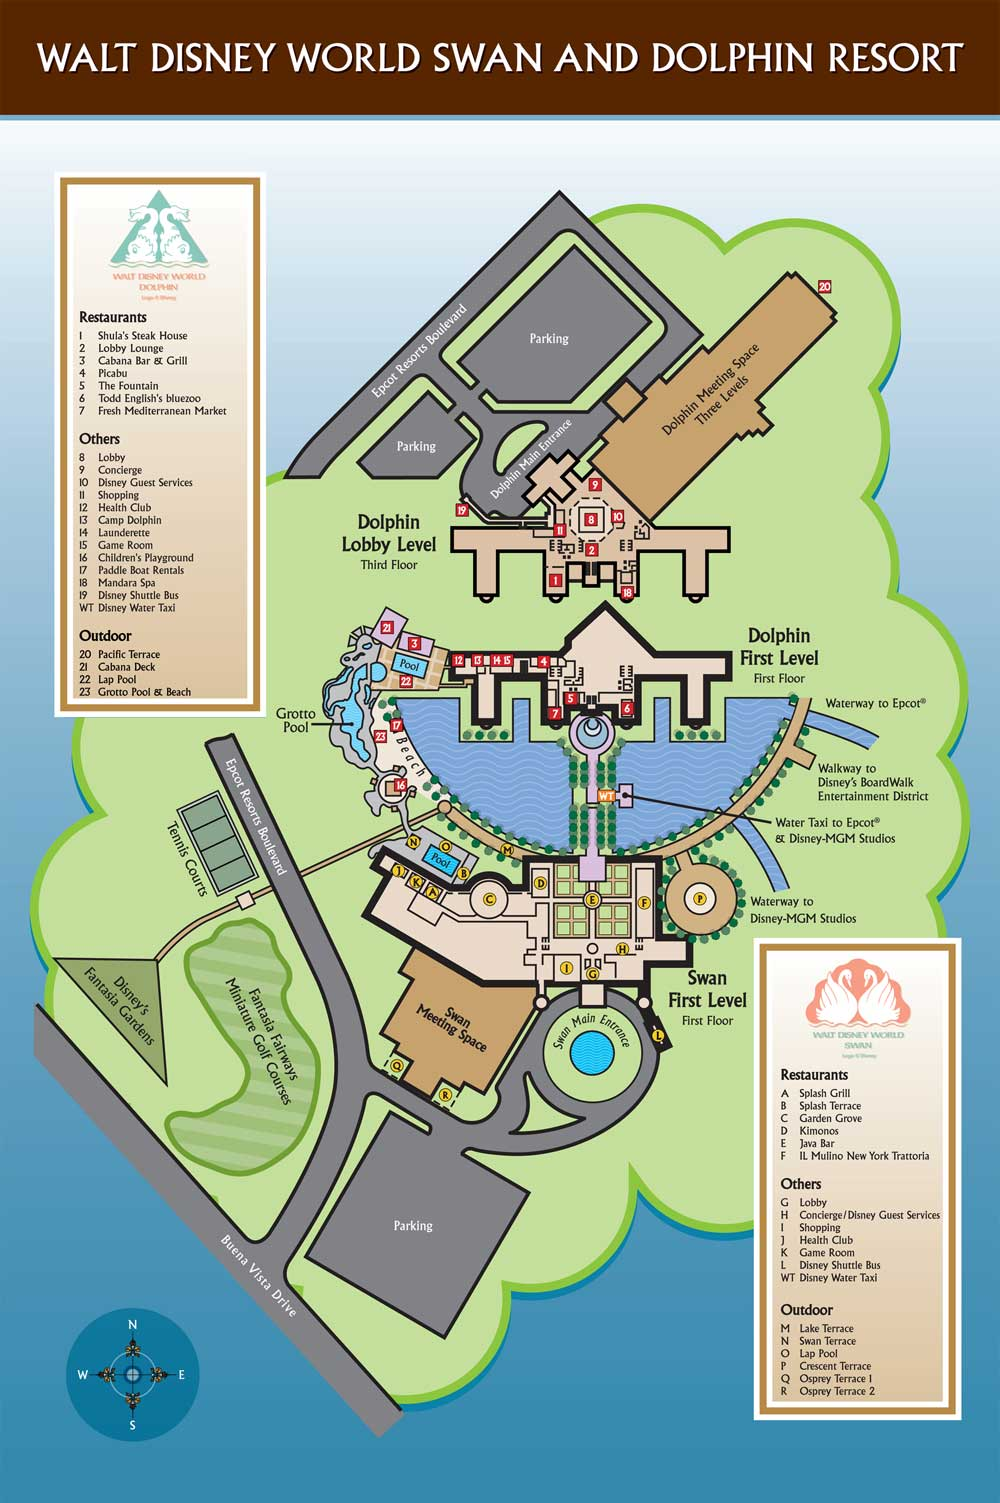 WDW Swan and Dolphin Map - wdwinfo.com